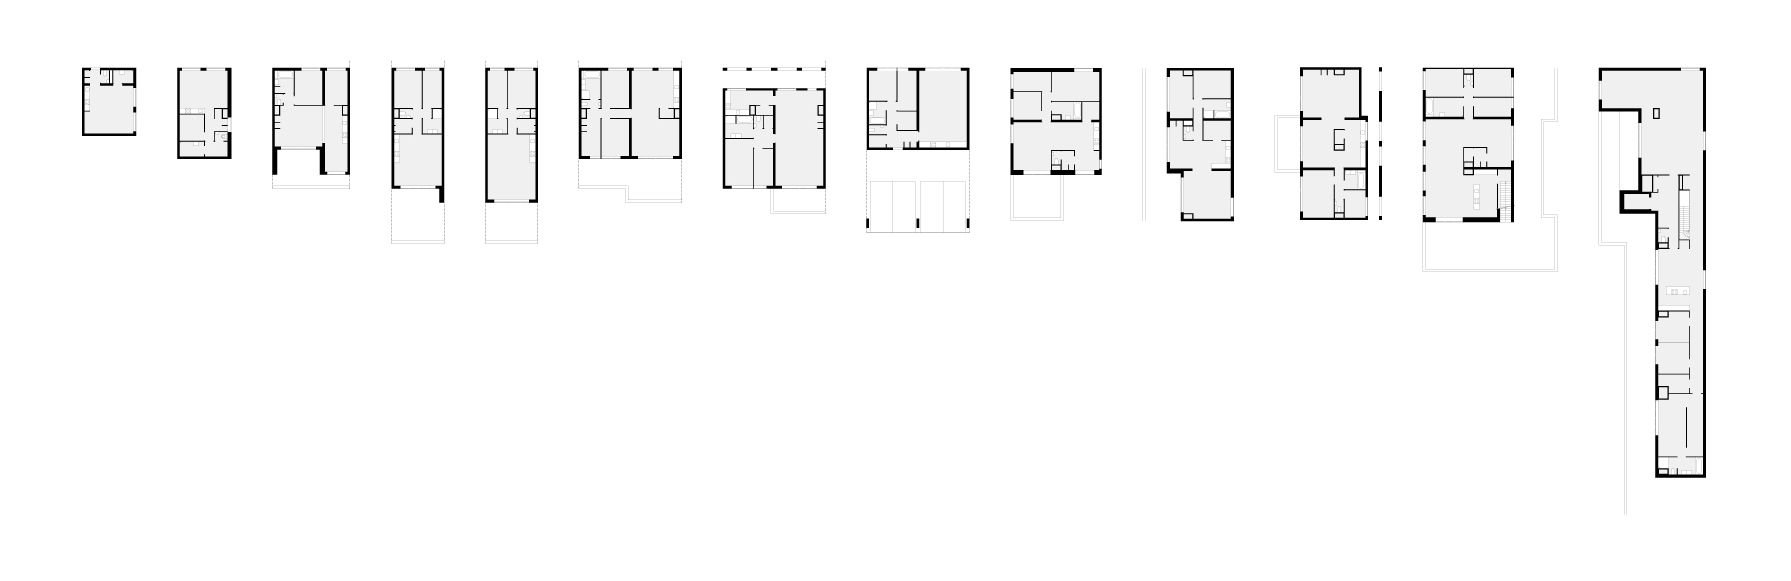 Ithaka offers a big variety of dwellings from 24m2 to 400m2 Penthouse